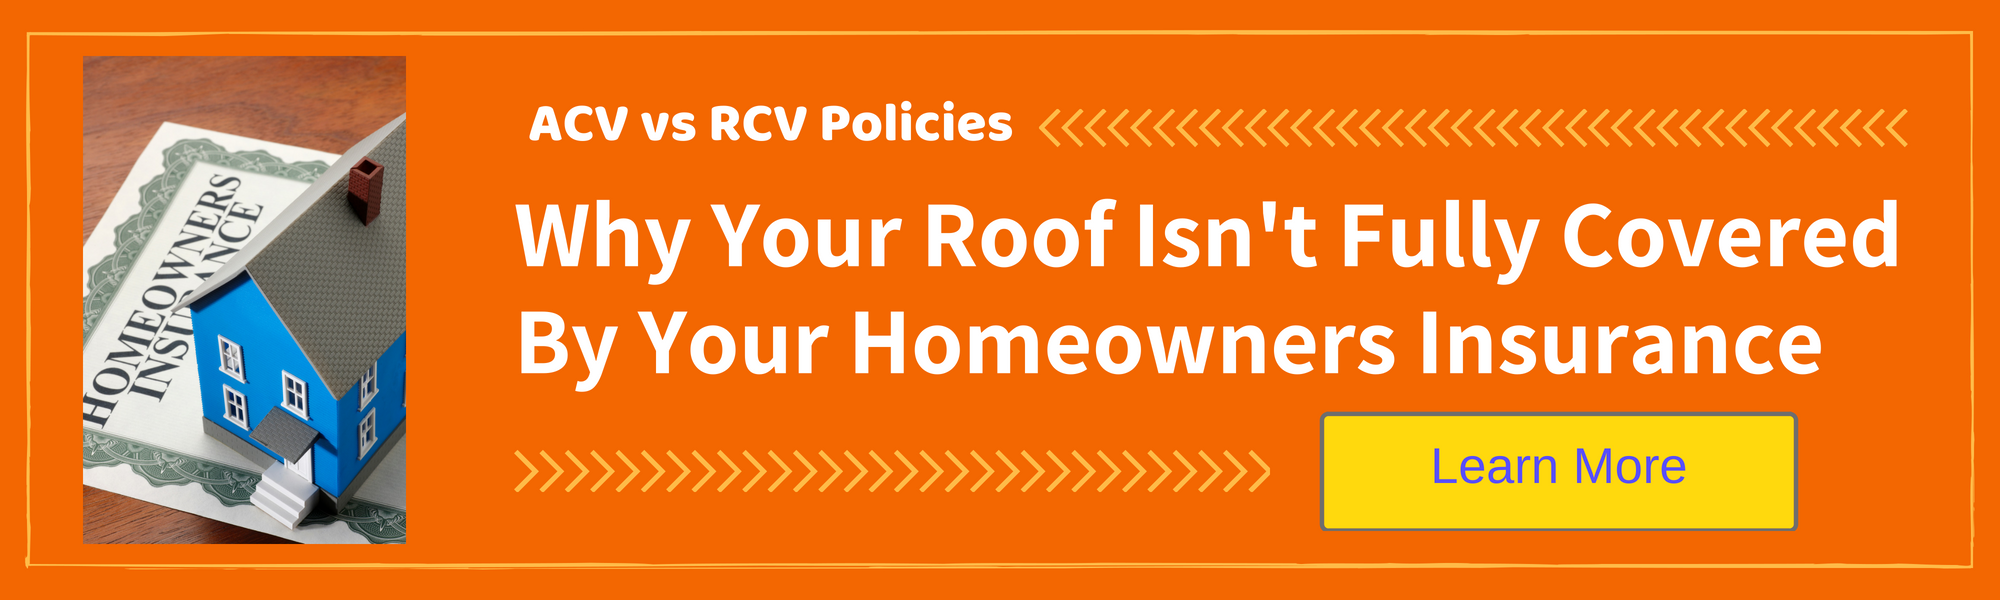 Why your roof isn't fully covered by your homeowners insurance